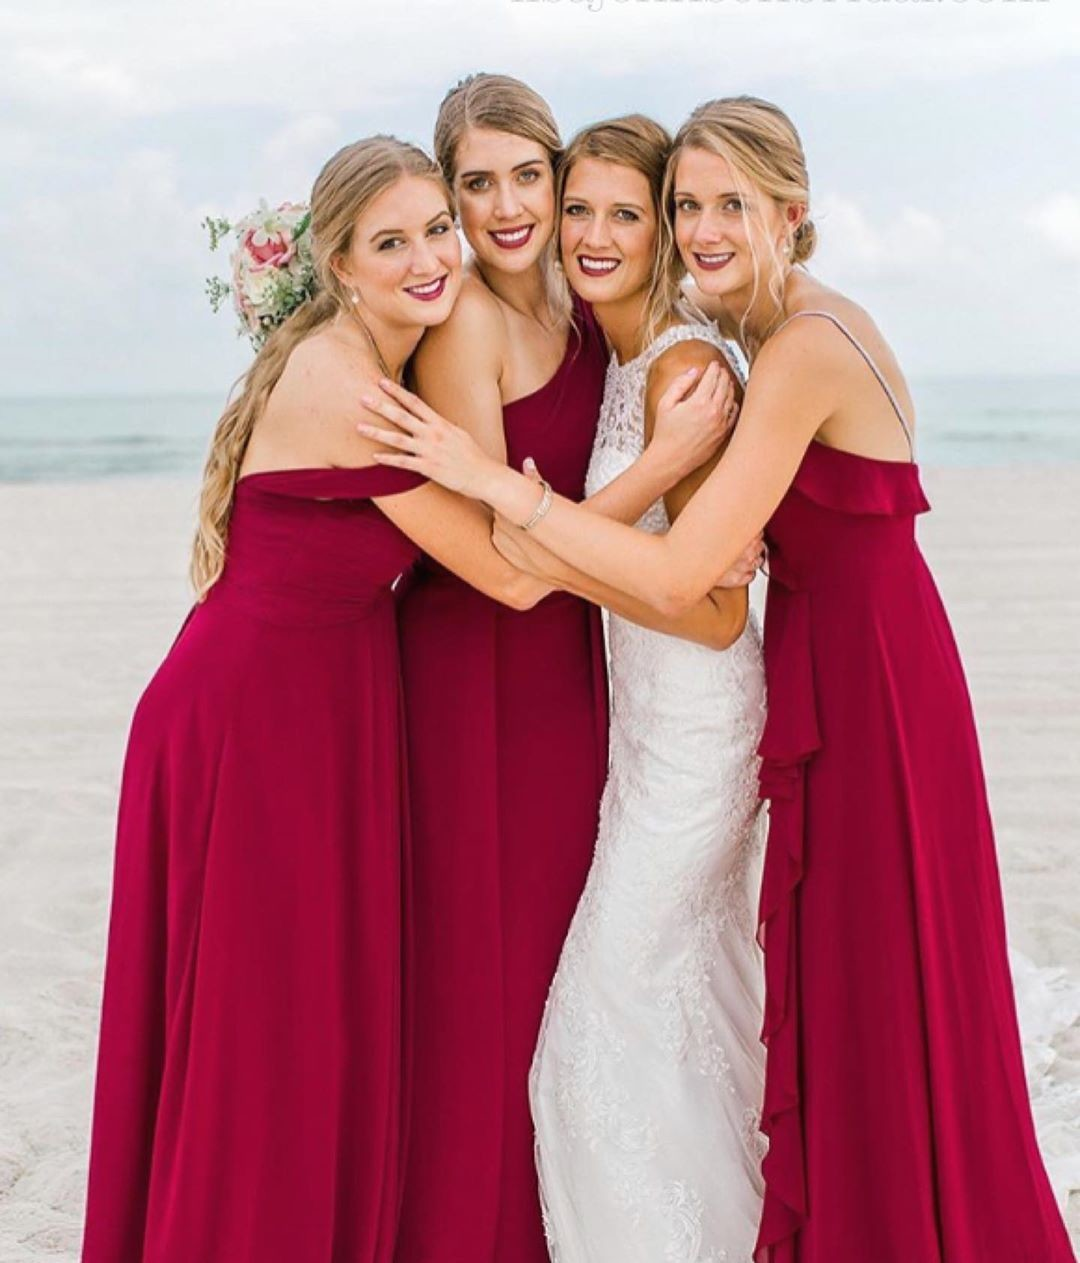 these beautiful girls & lovely bride @amber_l_boone27